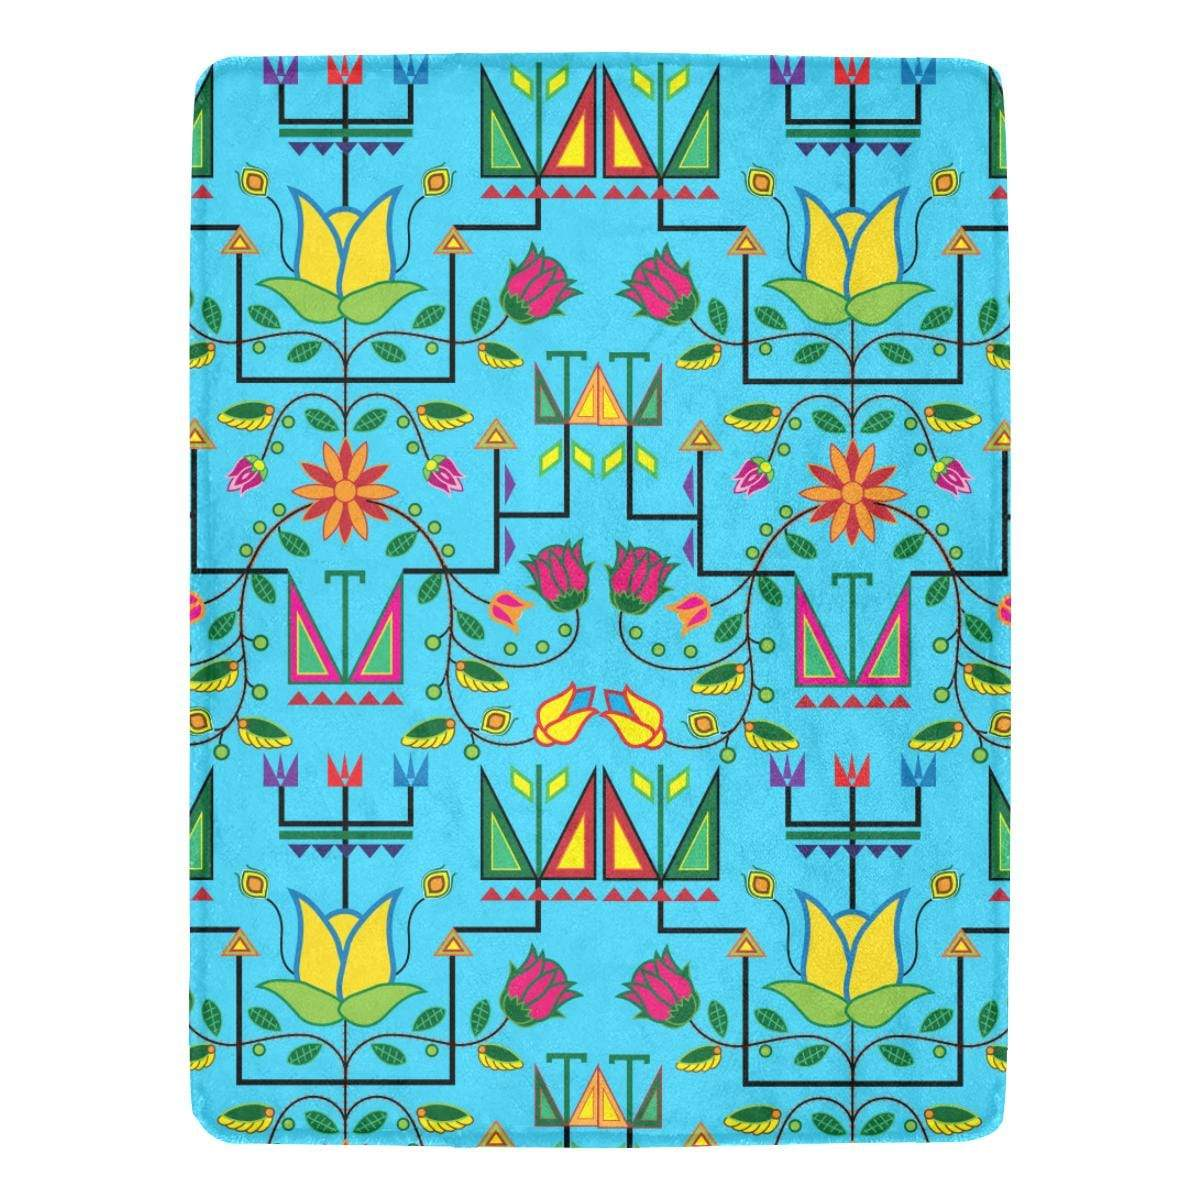 Geometric Floral Summer - Sky Blue Ultra-Soft Micro Fleece Blanket 60